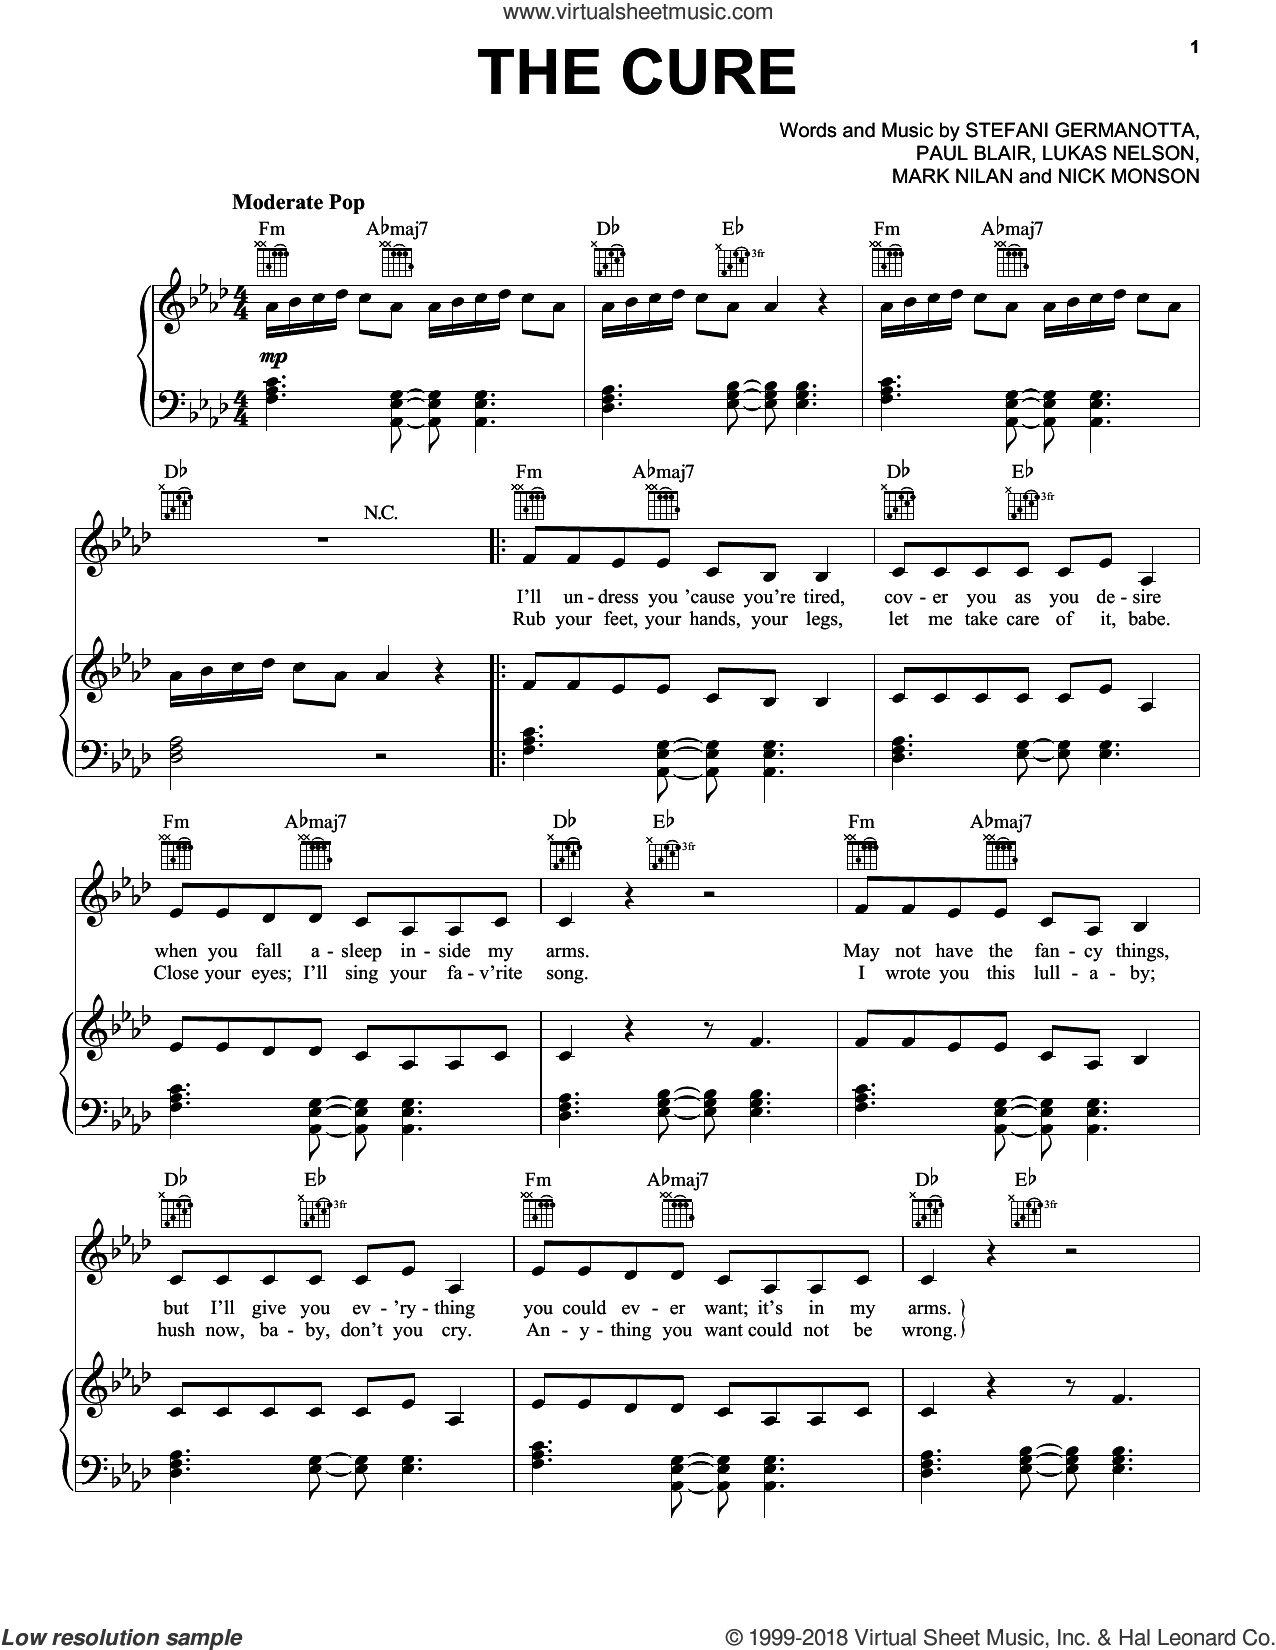 The Cure sheet music for voice, piano or guitar by Lady Gaga, Lukas Nelson, Mark Nilan, Nick Monson and Paul Blair, intermediate